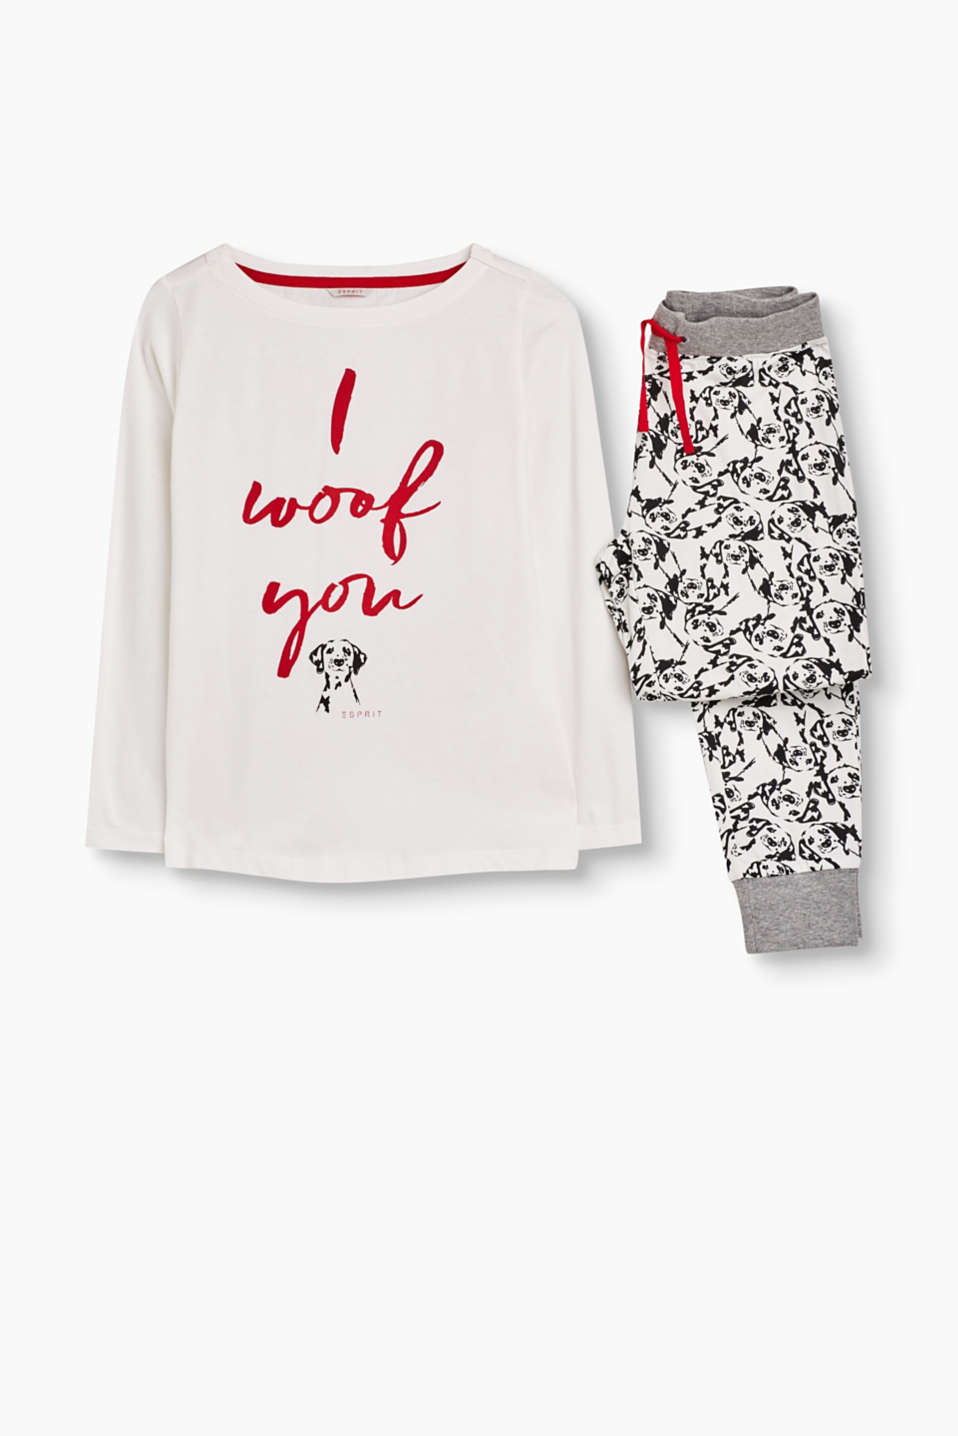 These pyjamas with a slogan print and dog design are wonderfully soft and have a particularly pretty look.